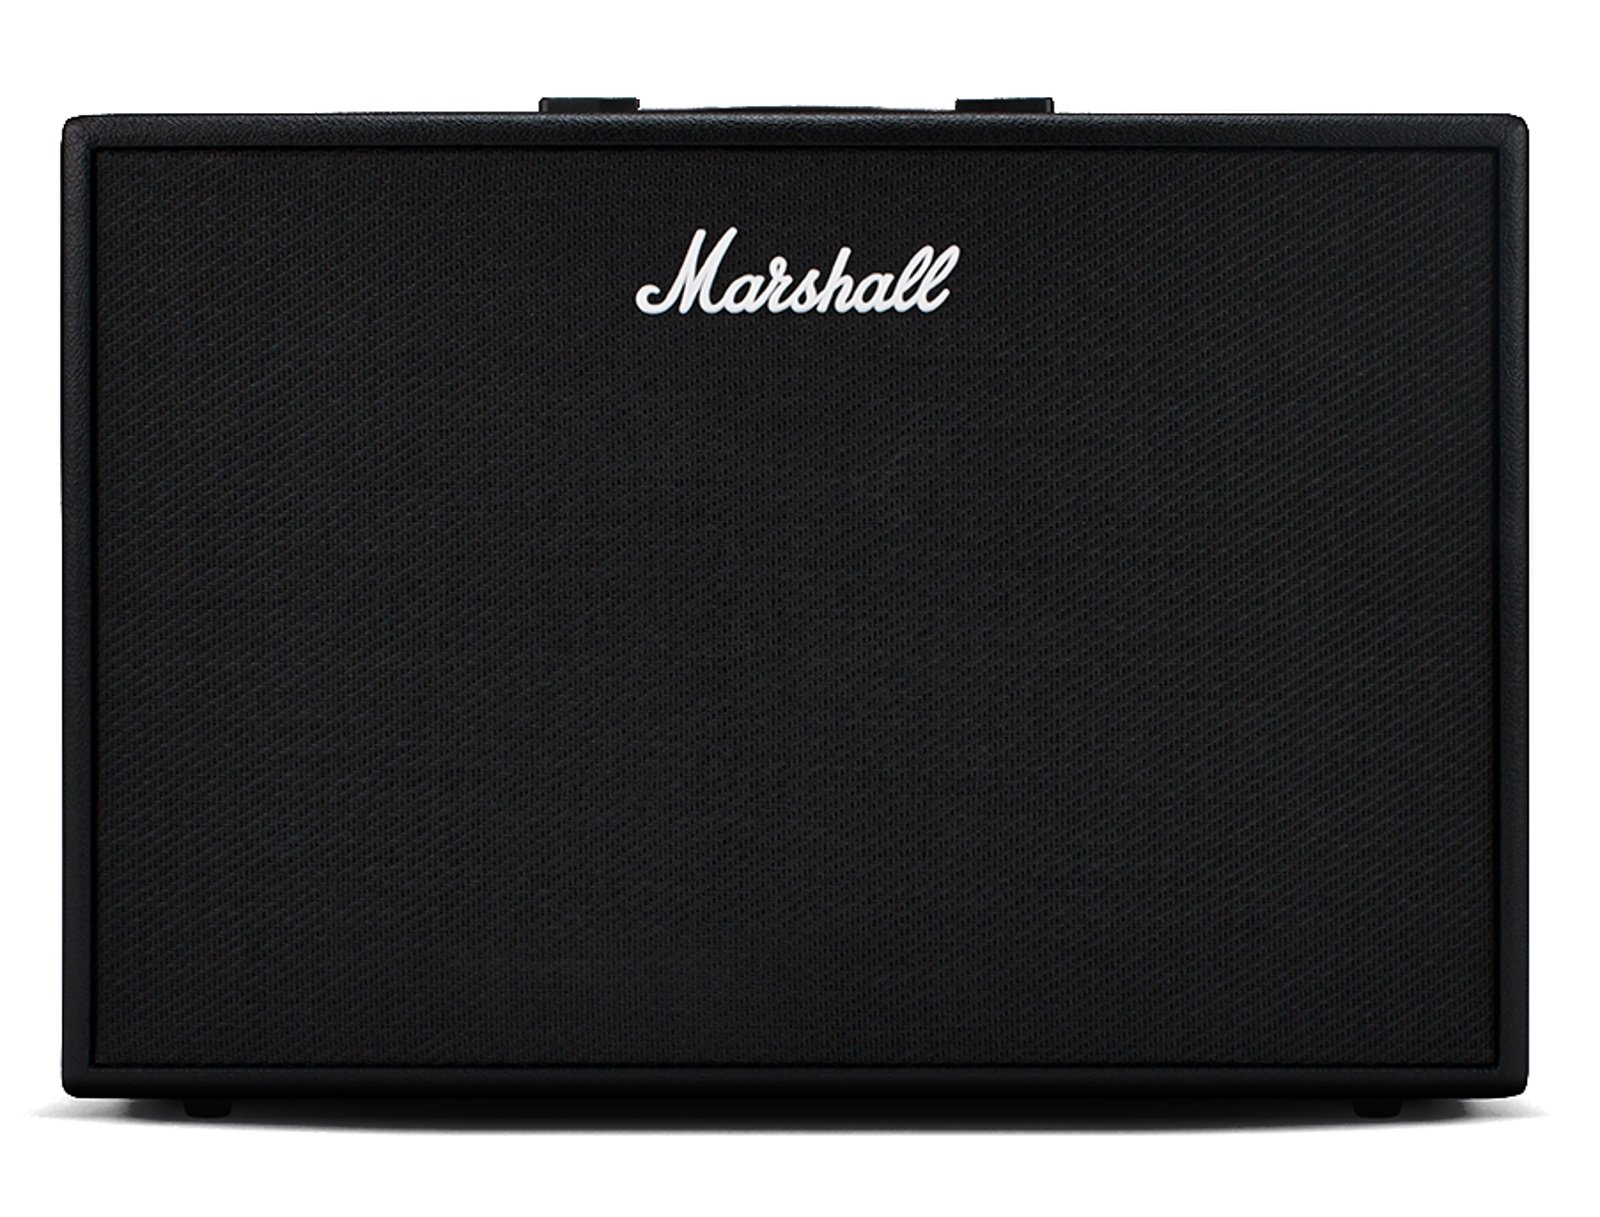 marshall amplification code 100 100 watt combo amplifier with 2x12 speakers full compass. Black Bedroom Furniture Sets. Home Design Ideas